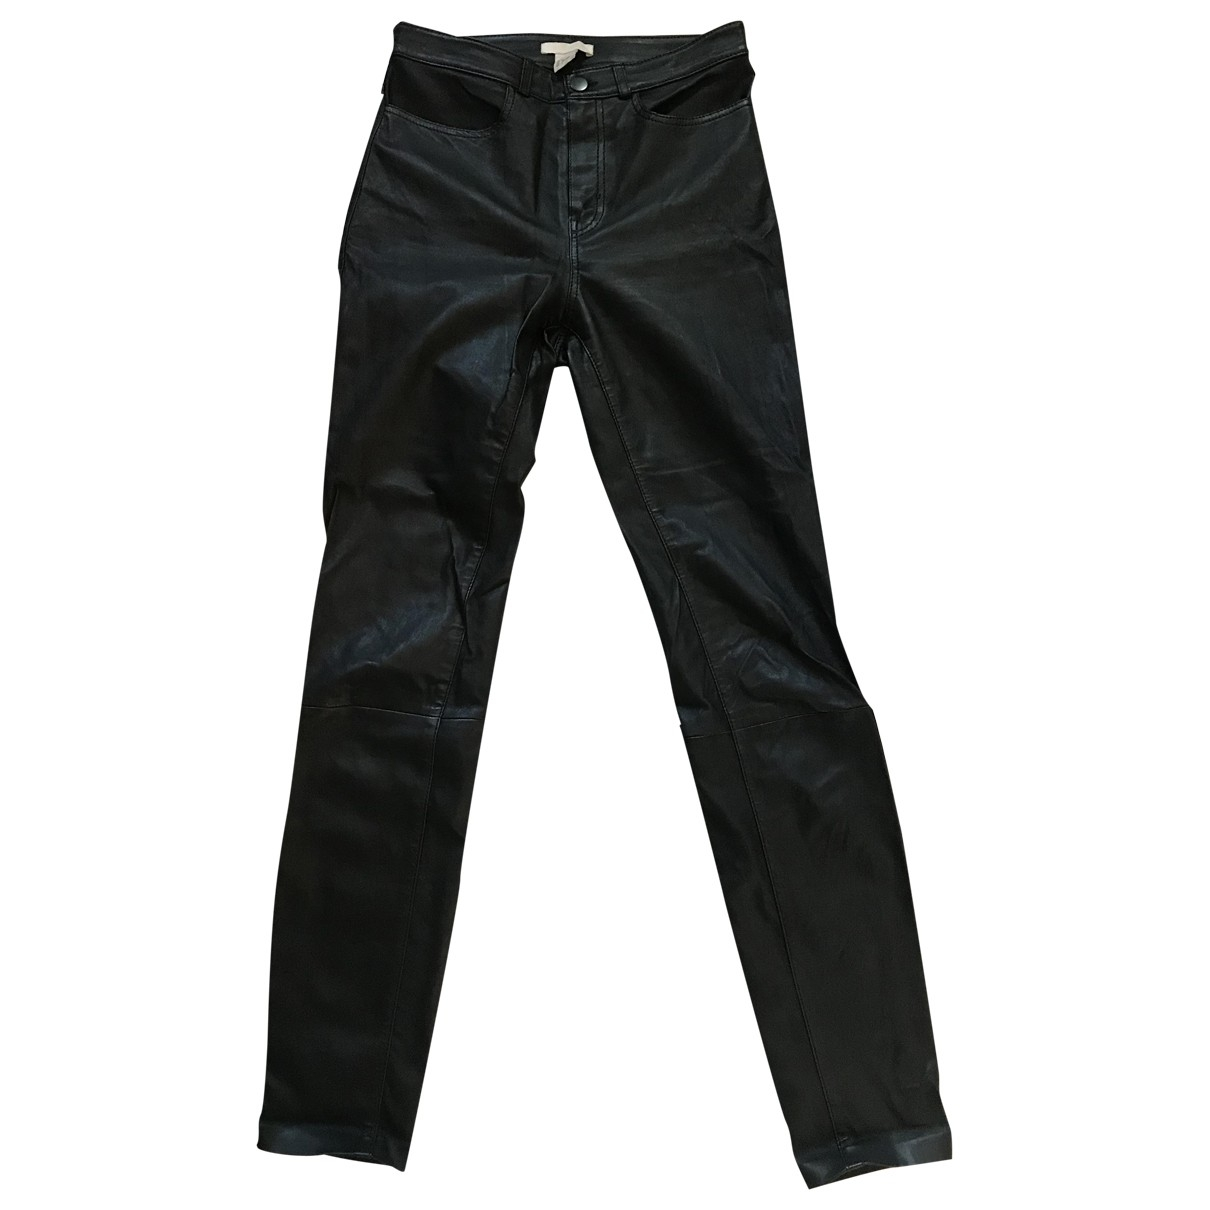 H&m Studio \N Black Leather Trousers for Women 6 US